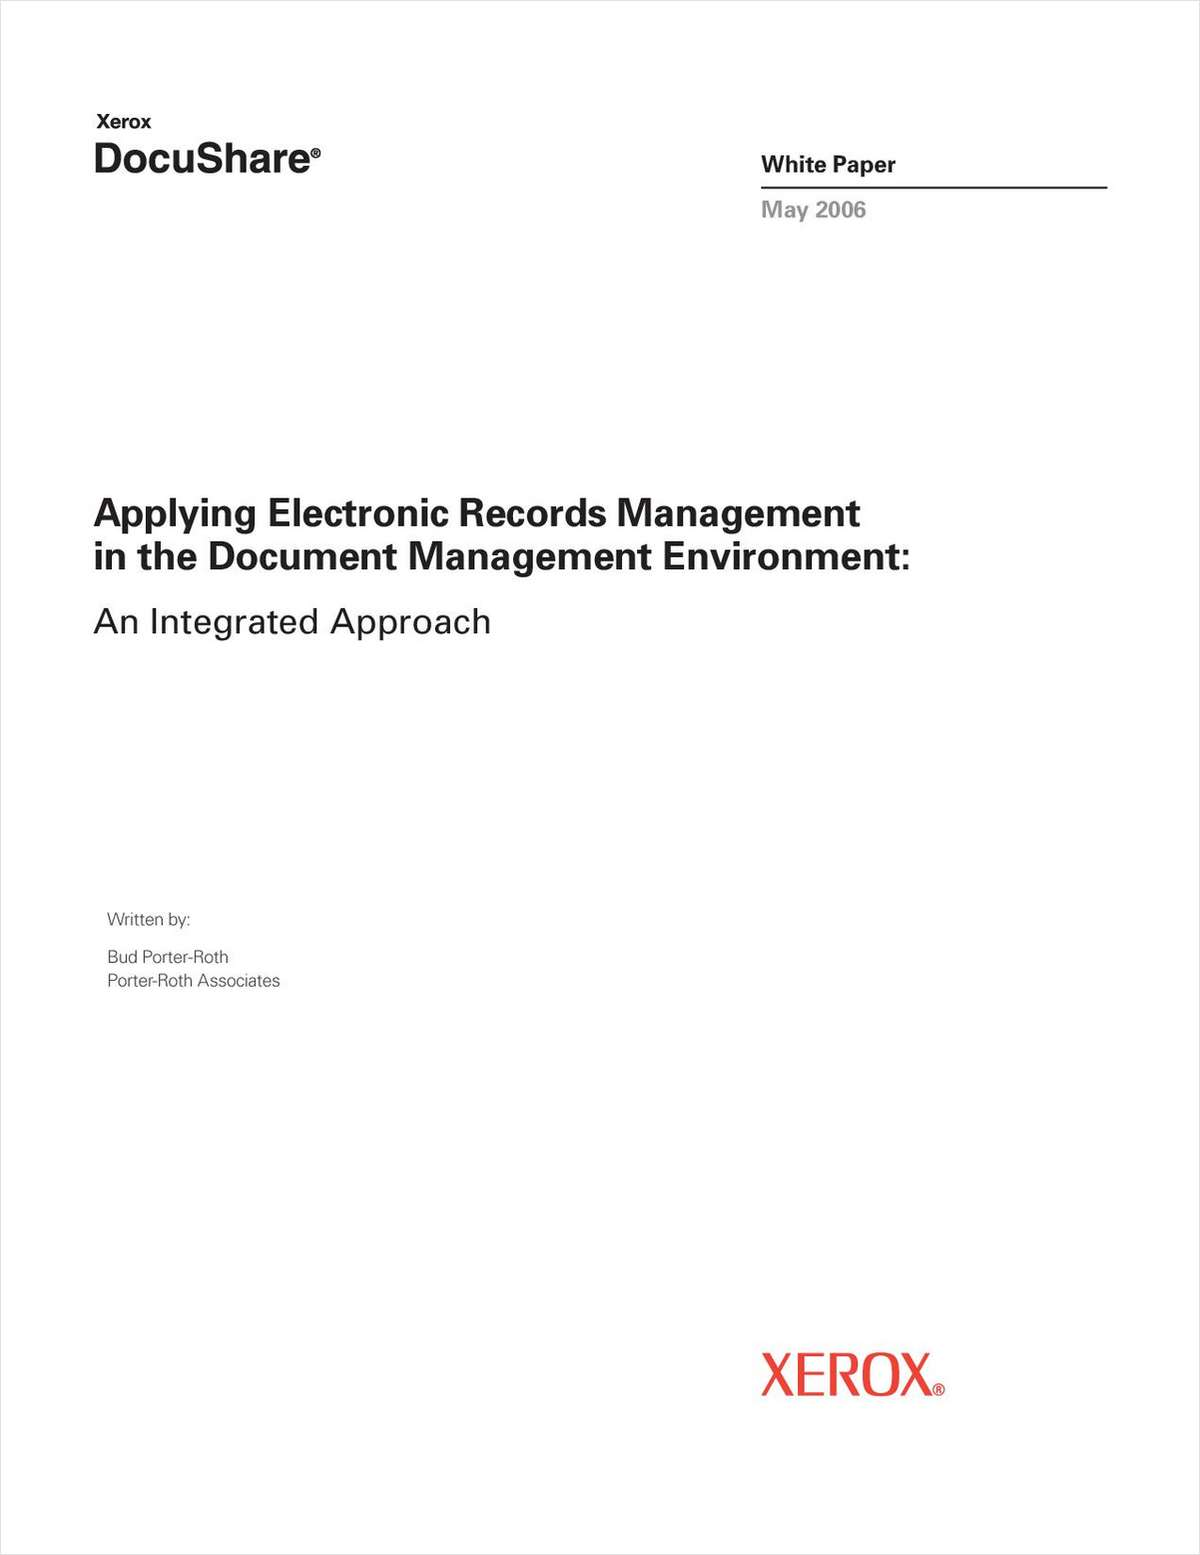 Applying Electronic Records Management in the Document Management Environment: An Integrated Approach